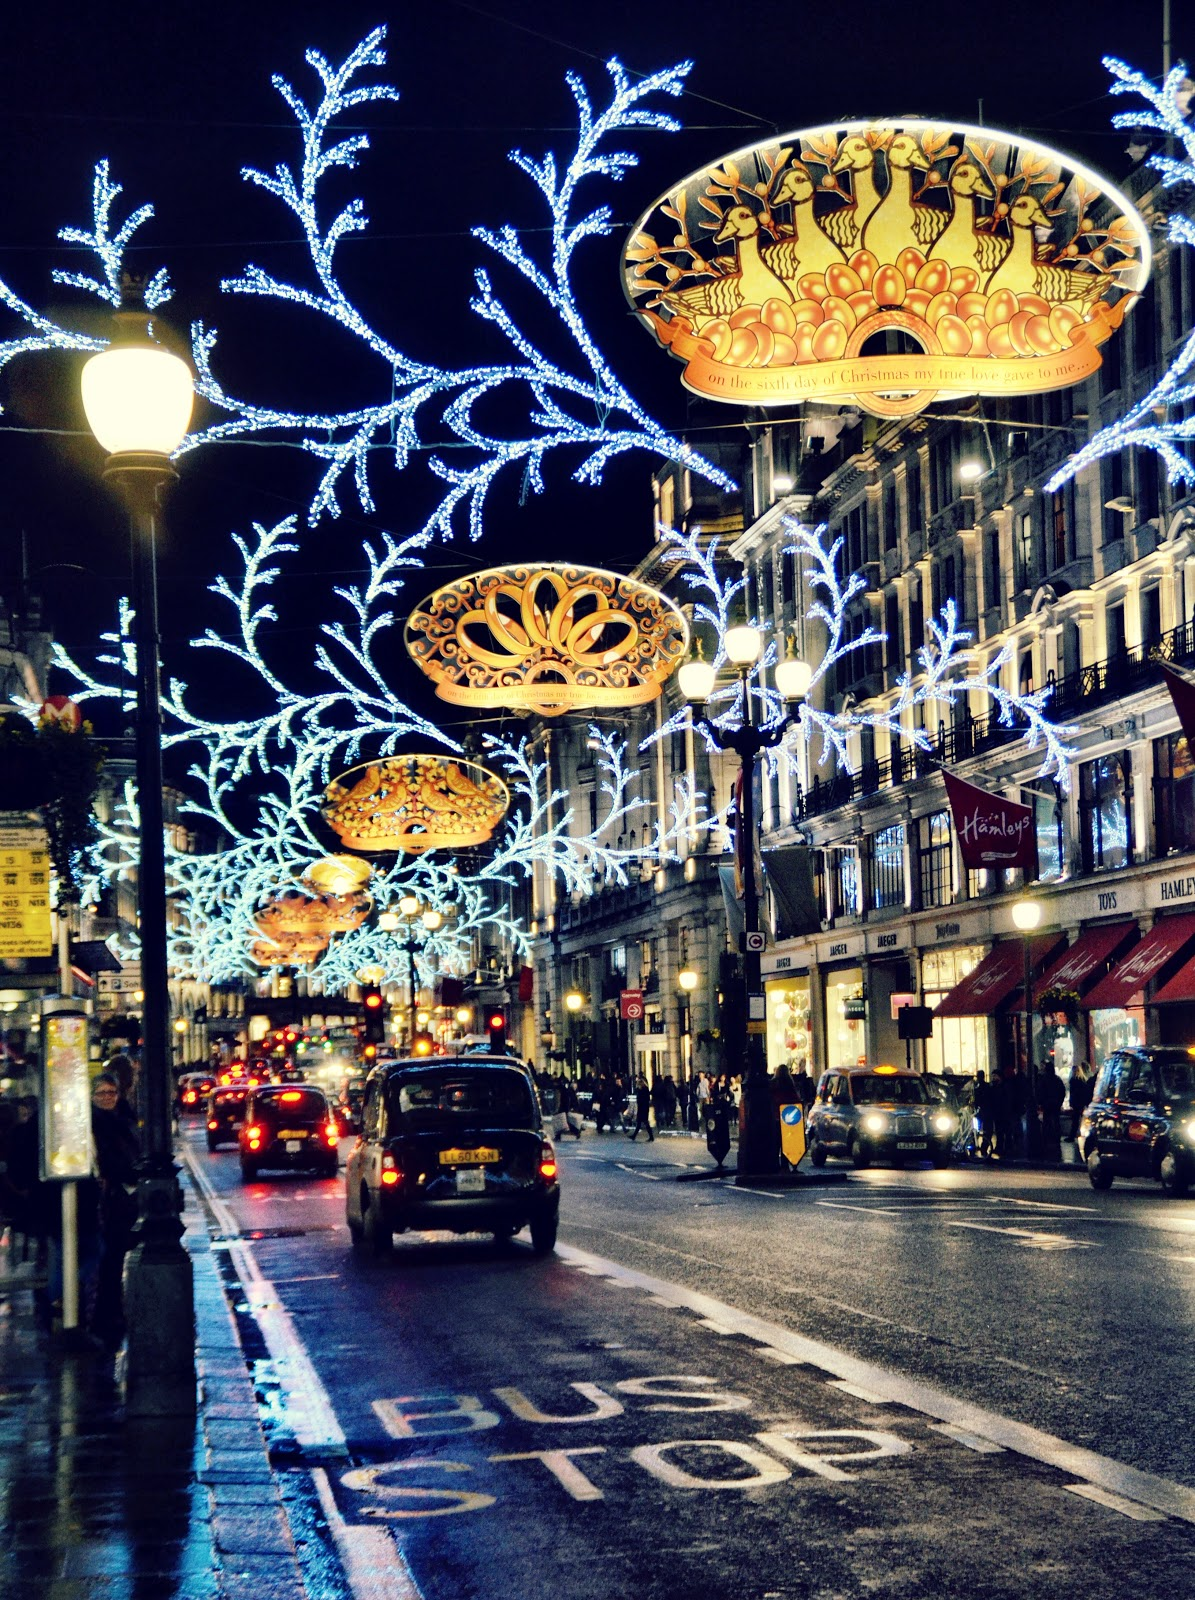 Night lights queens walk london - 101 Best Images About London On Pinterest Harry Potter London Westminster Abbey London And Louis Vuitton Store